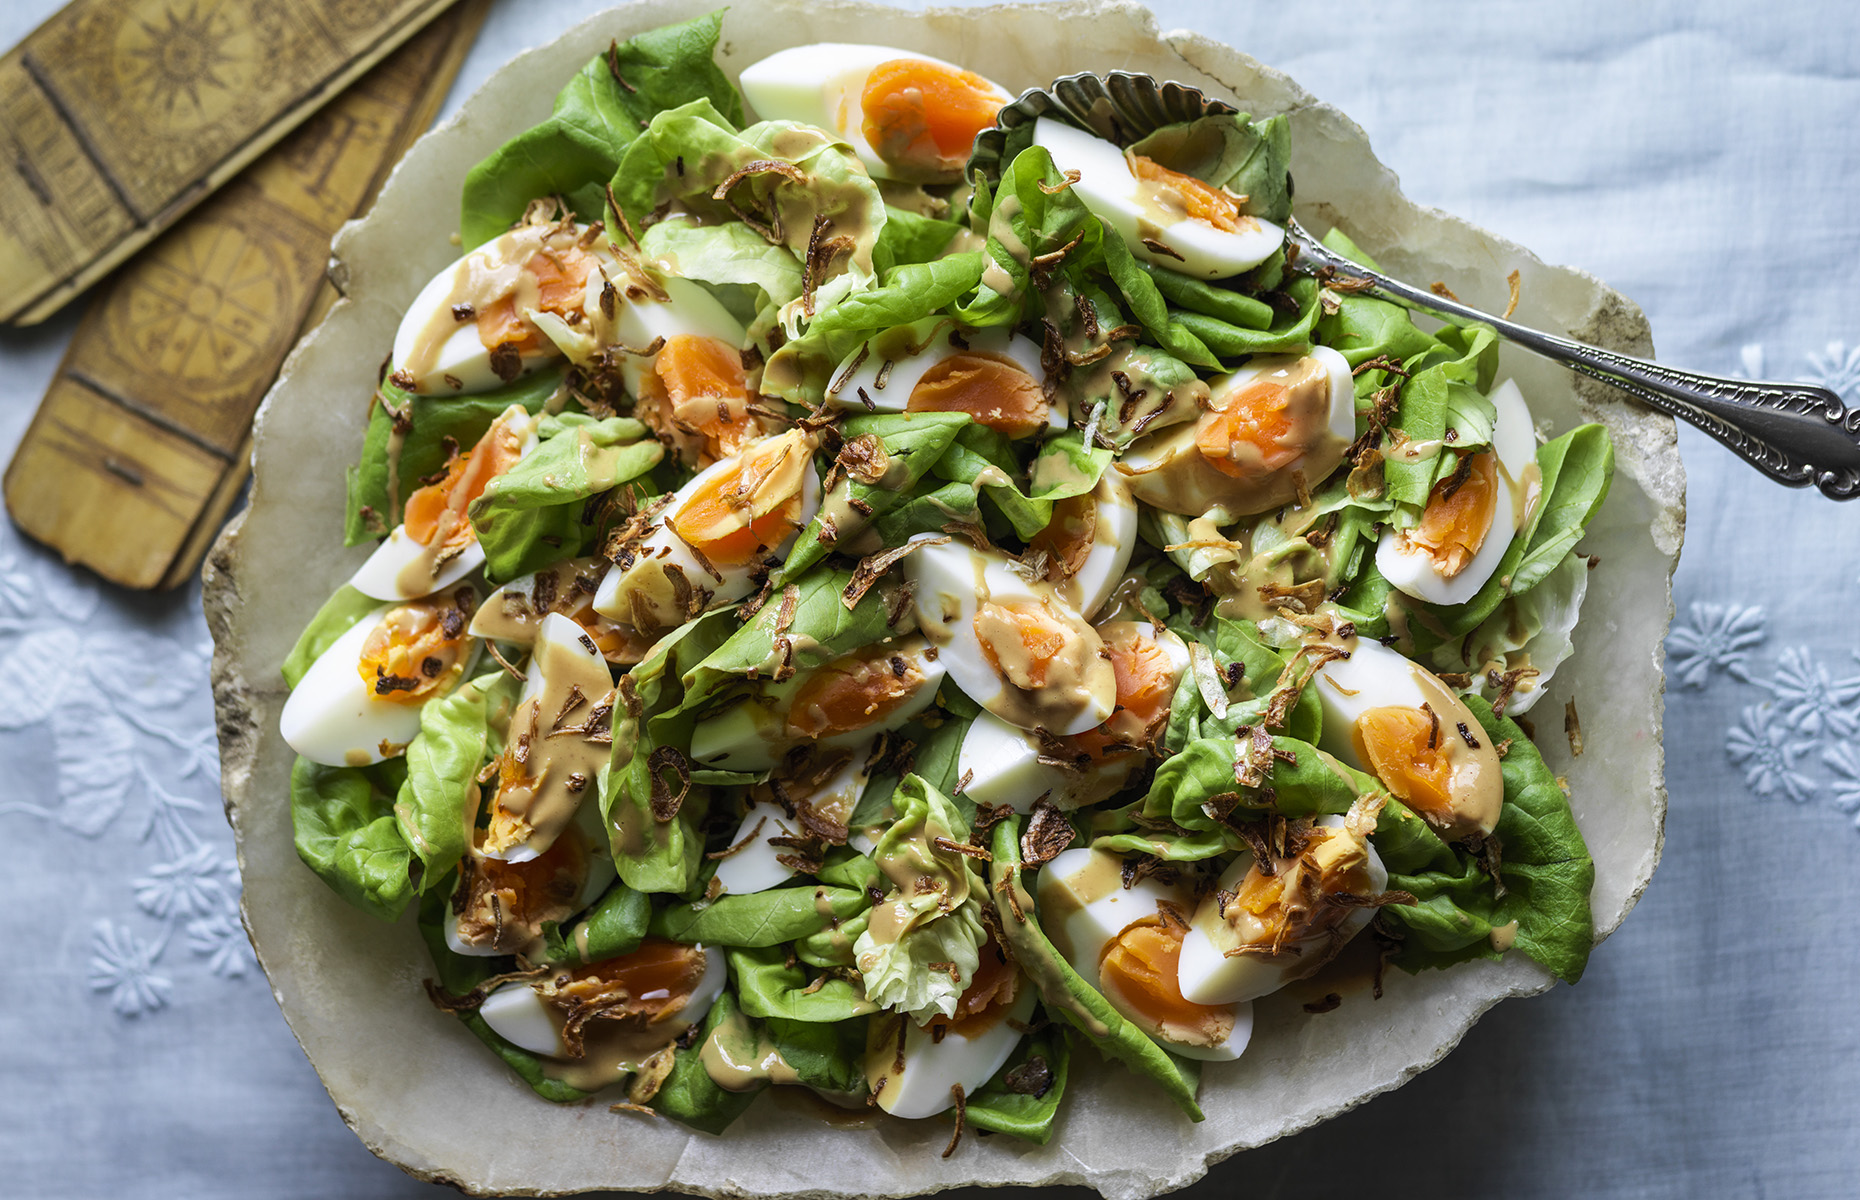 Egg and lettuce salad